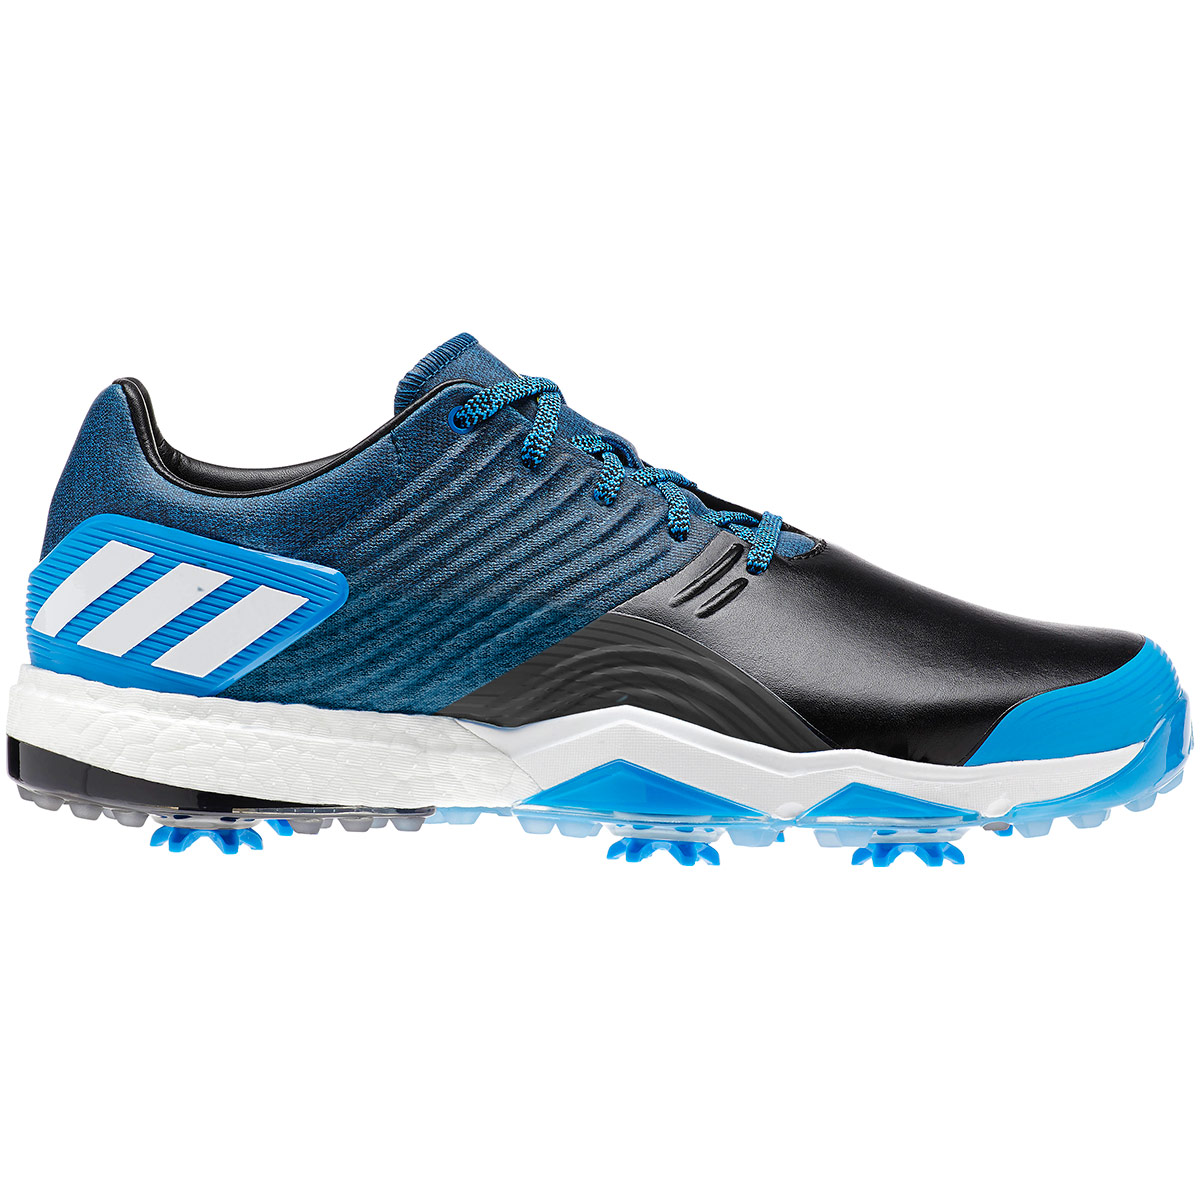 01c229621a7 adidas Golf Adipower 4Orged Shoes. New Arrivals. Adidas Adipower 4Orged S9  ...